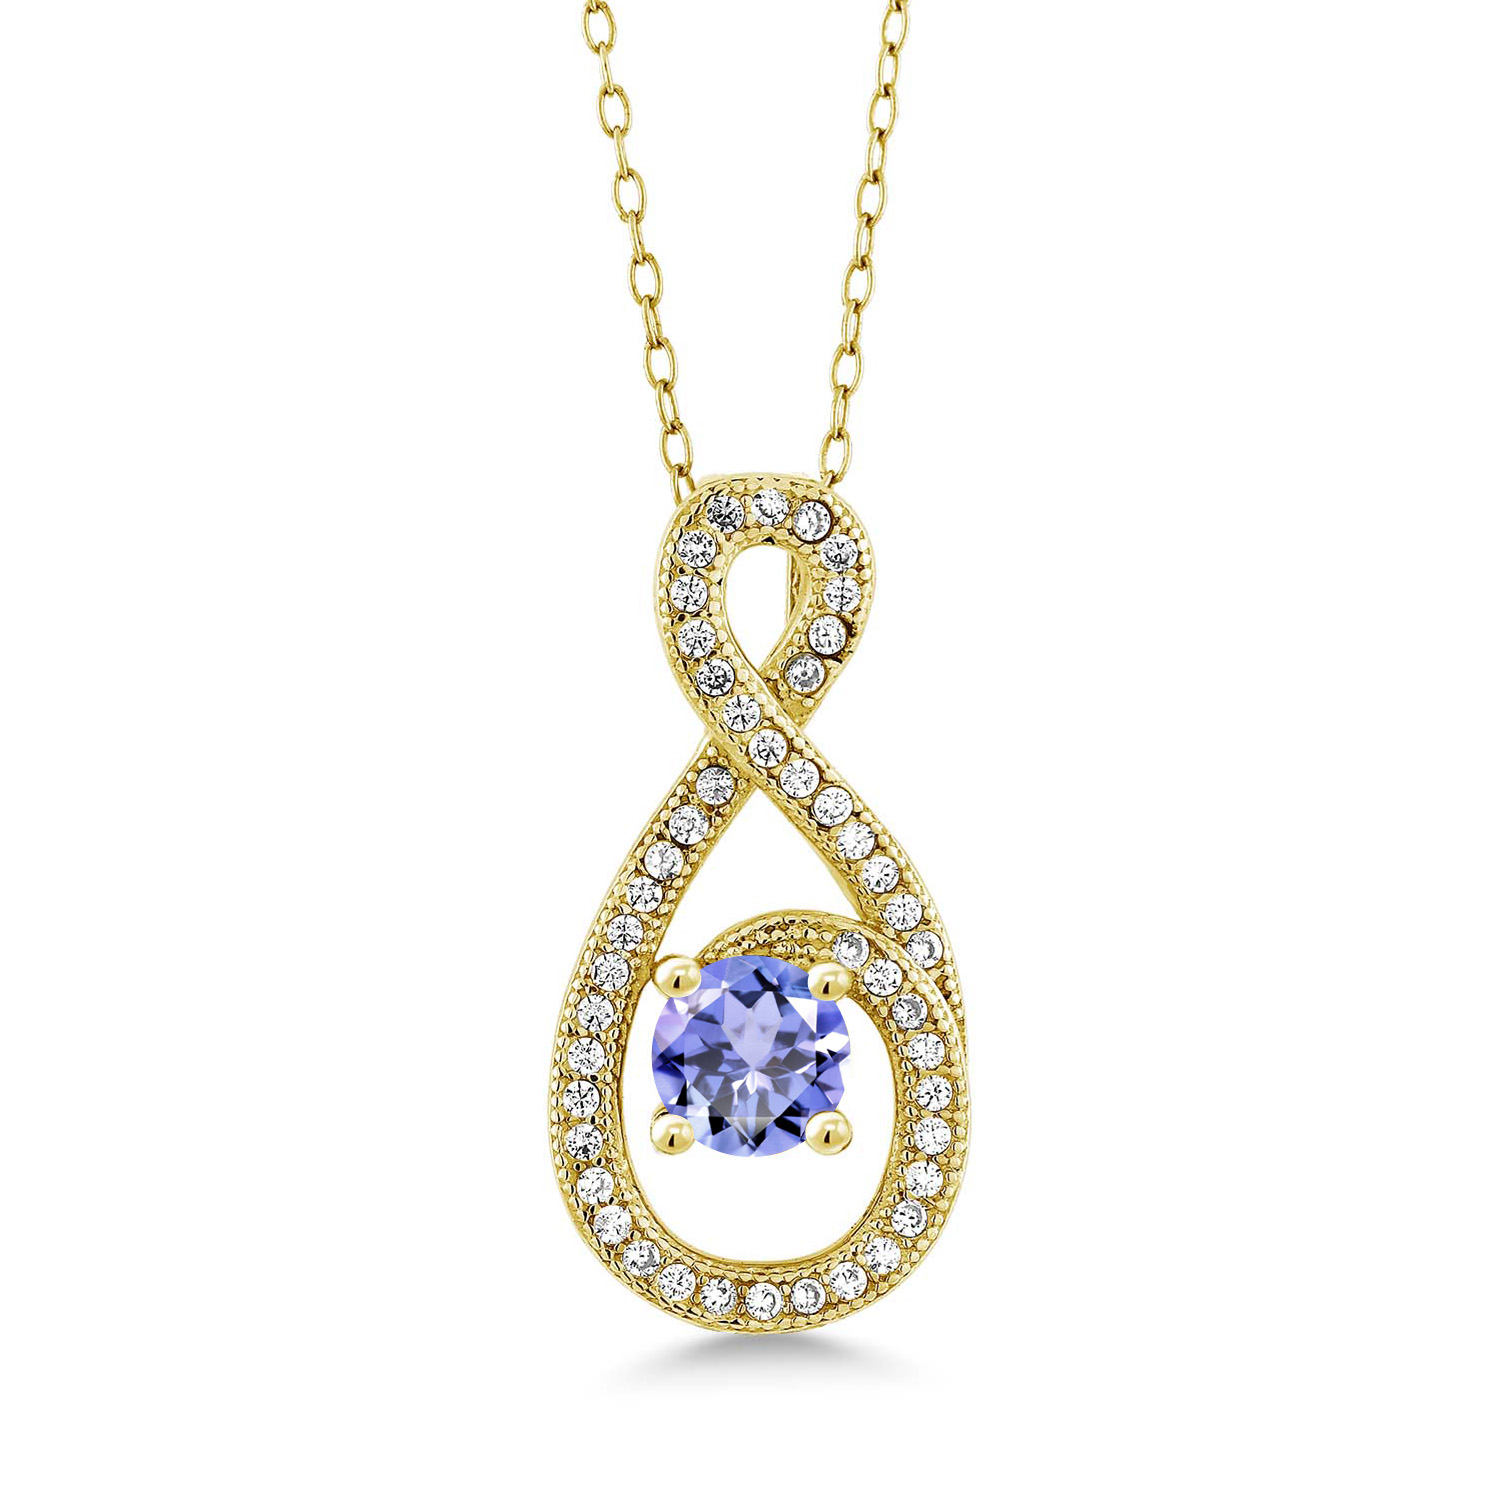 Gem Stone King 1.06 Ct Round Blue Sapphire White Topaz 18K Yellow Gold Plated Silver Pendant